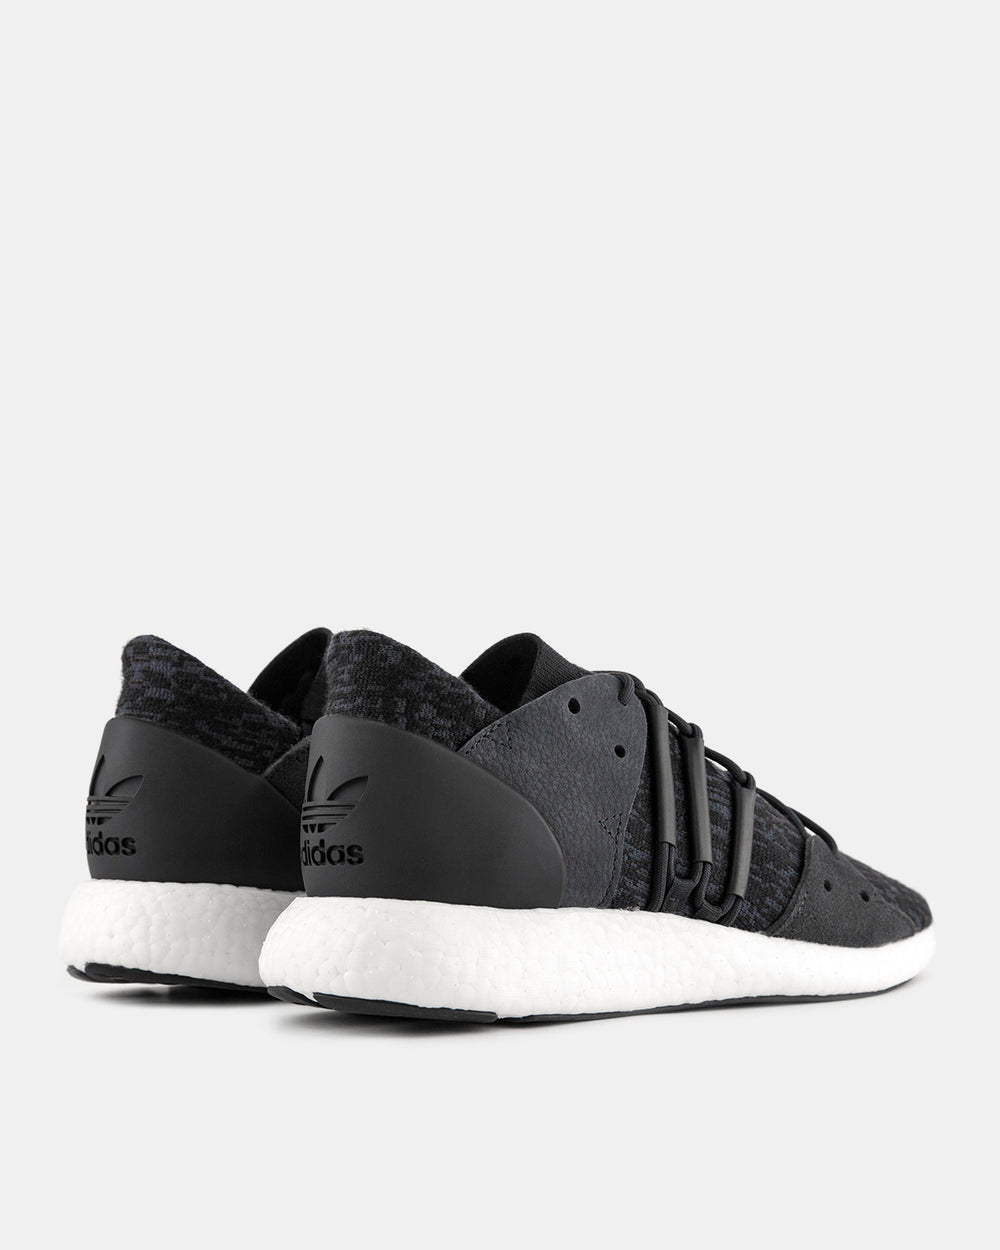 adidas - EQT 3/3 F15 Prime Knit (Core Black | Night Grey | White)